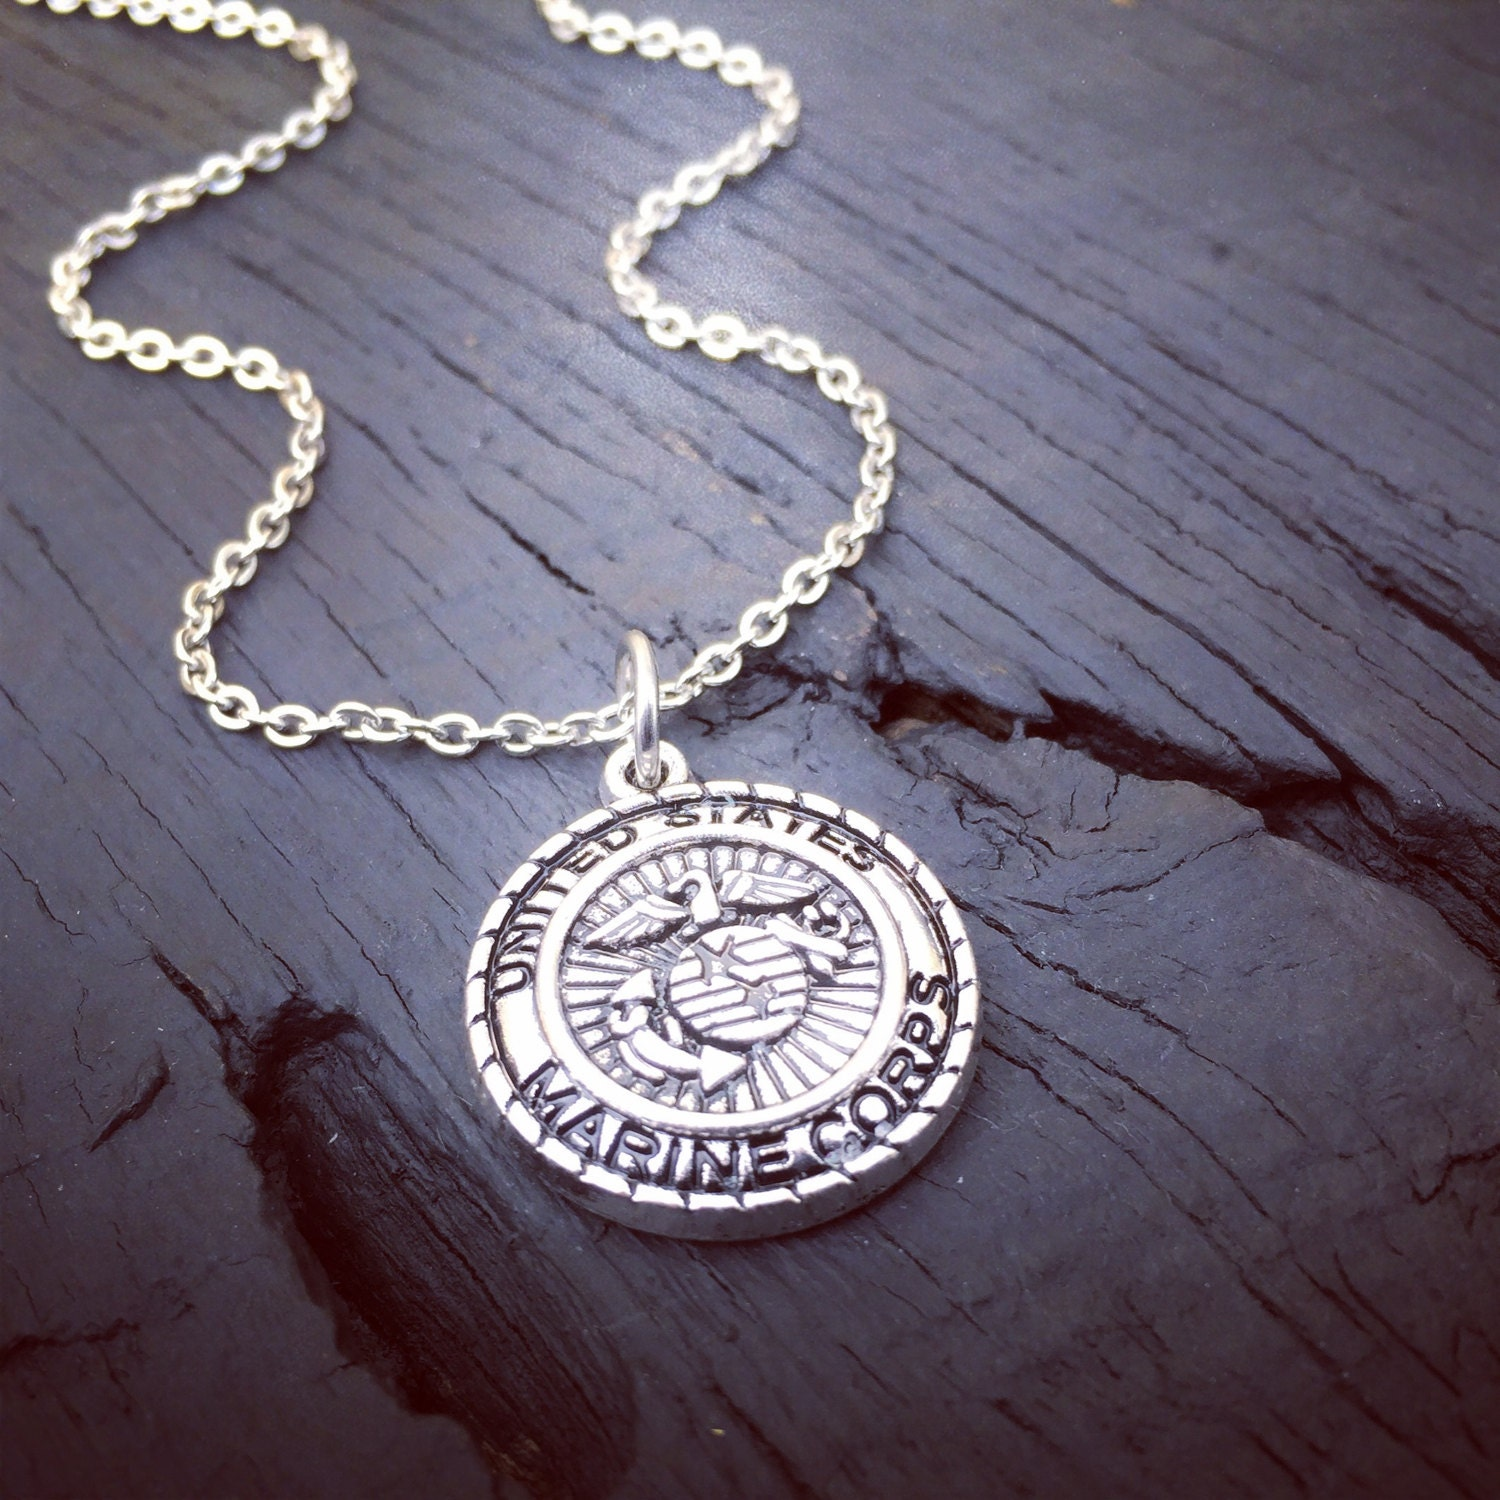 marine corps charm necklace marine corps wife jewelry etsy. Black Bedroom Furniture Sets. Home Design Ideas